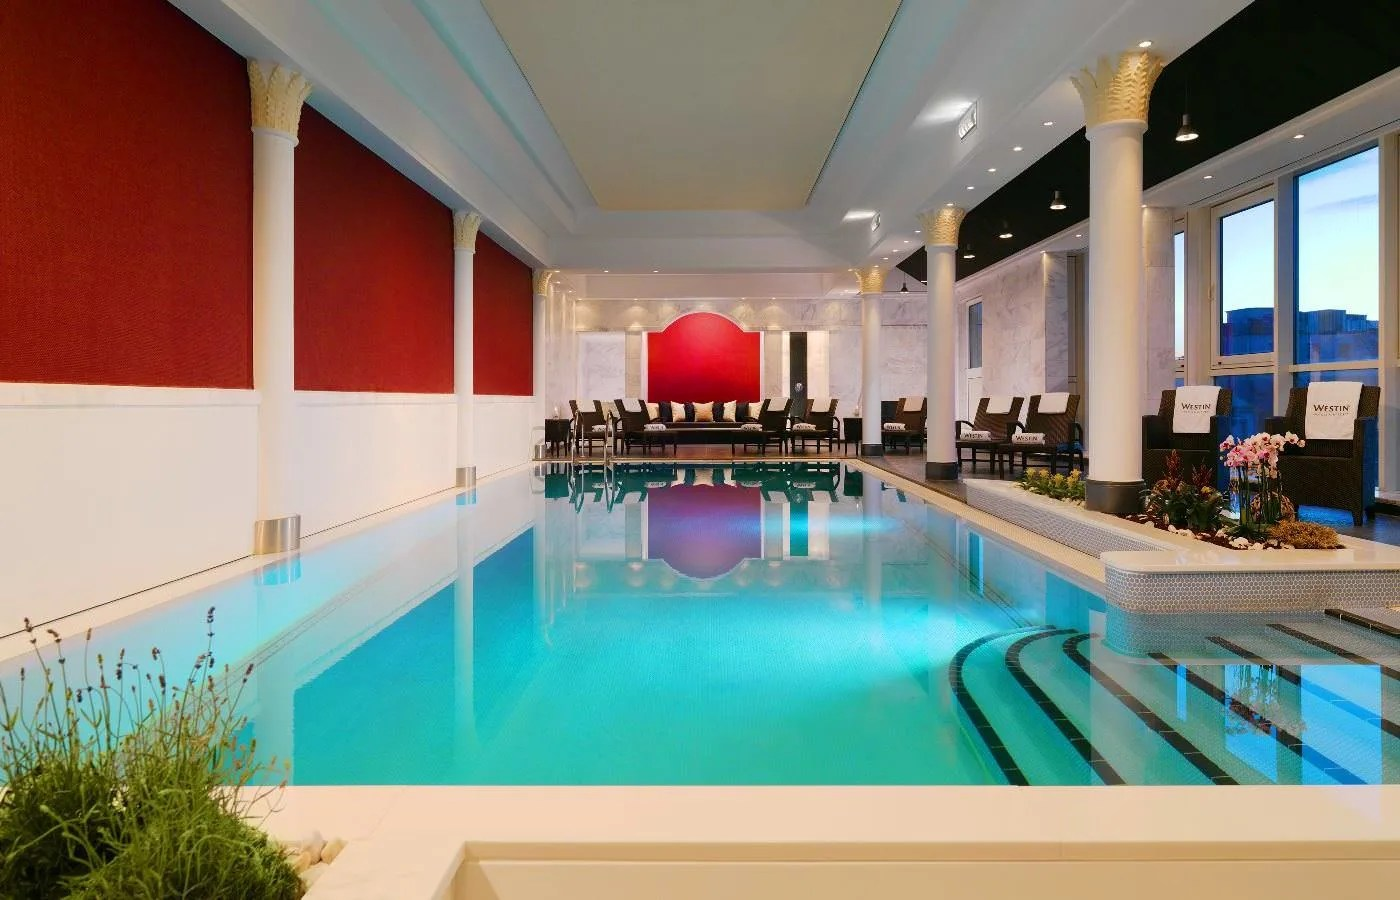 Swimming Pool Frankfurt Hotel Hotel The Westin Grand Frankfurt Frankfurt Trivago